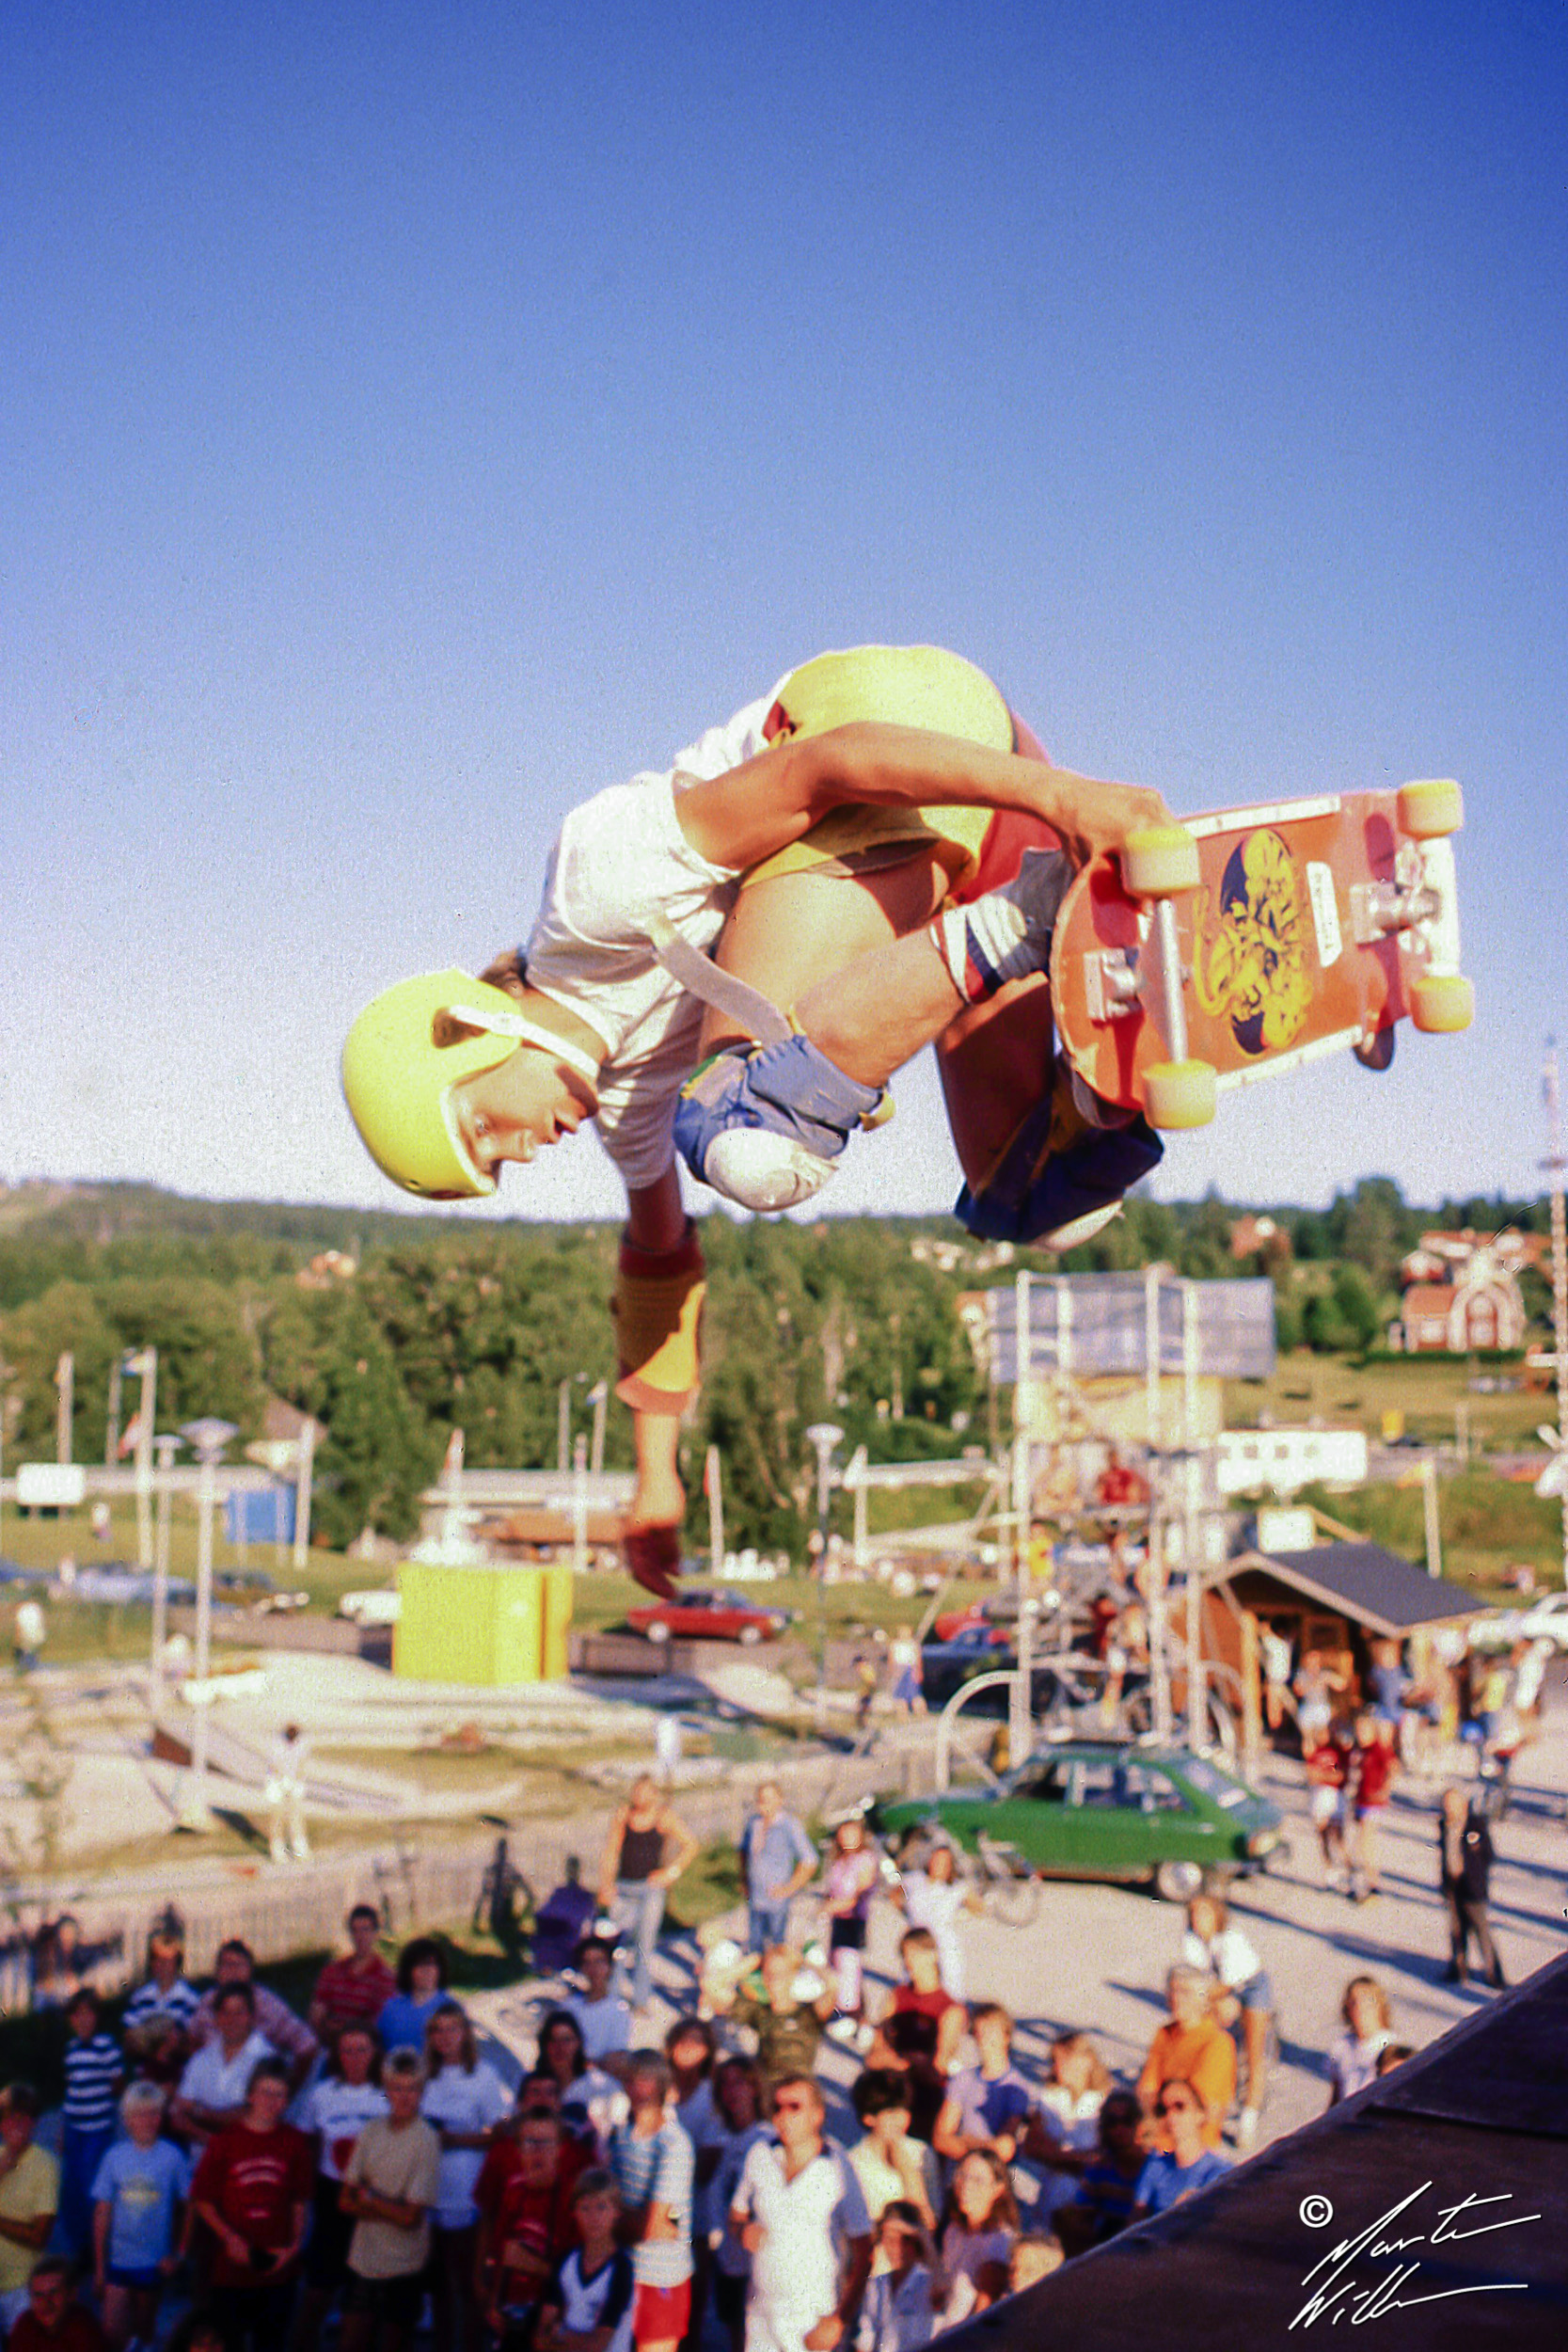 Mats Trane, Backside air,  Eurocana Summer Camp, Rättvik 1981